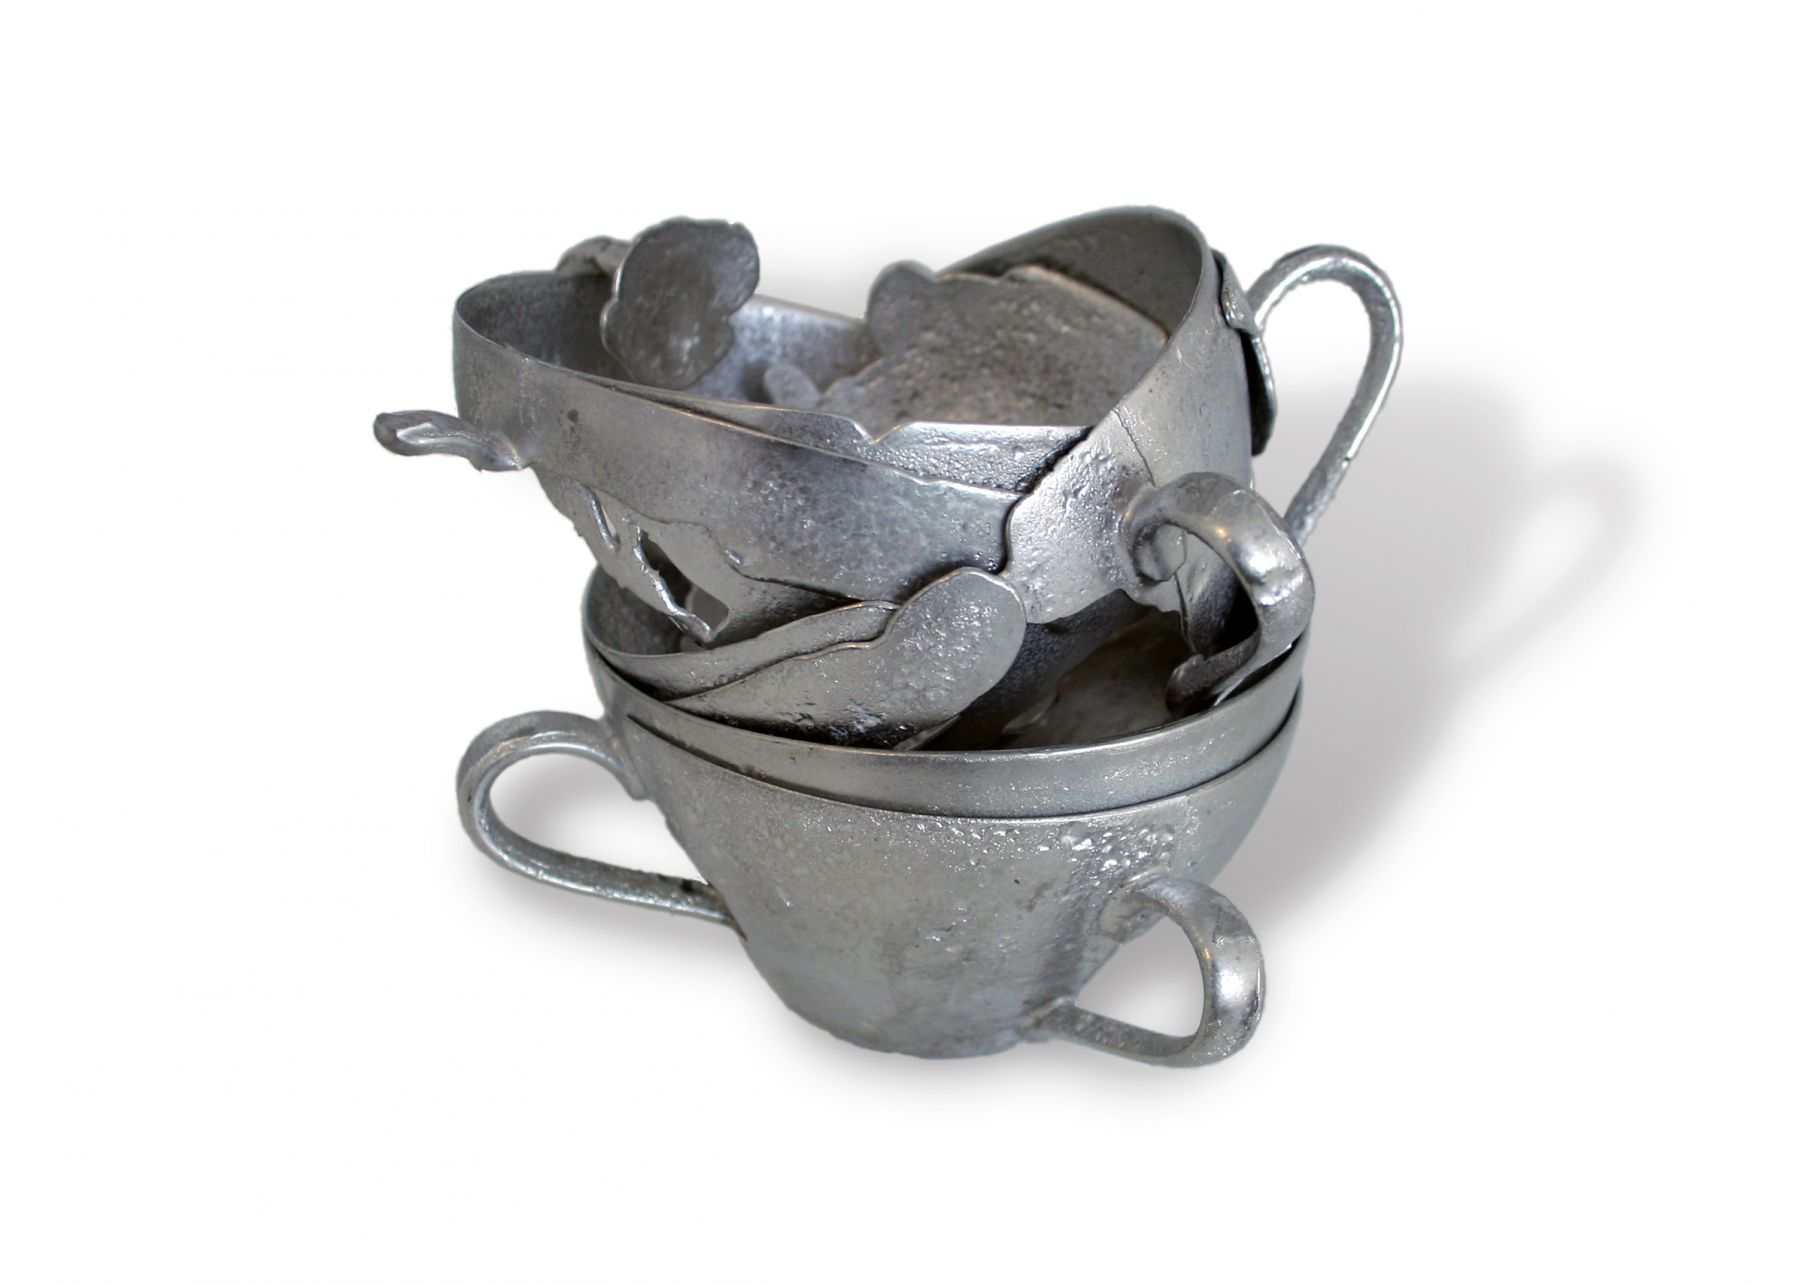 David Clarke, teacup, pewter, lead, silver, smithing